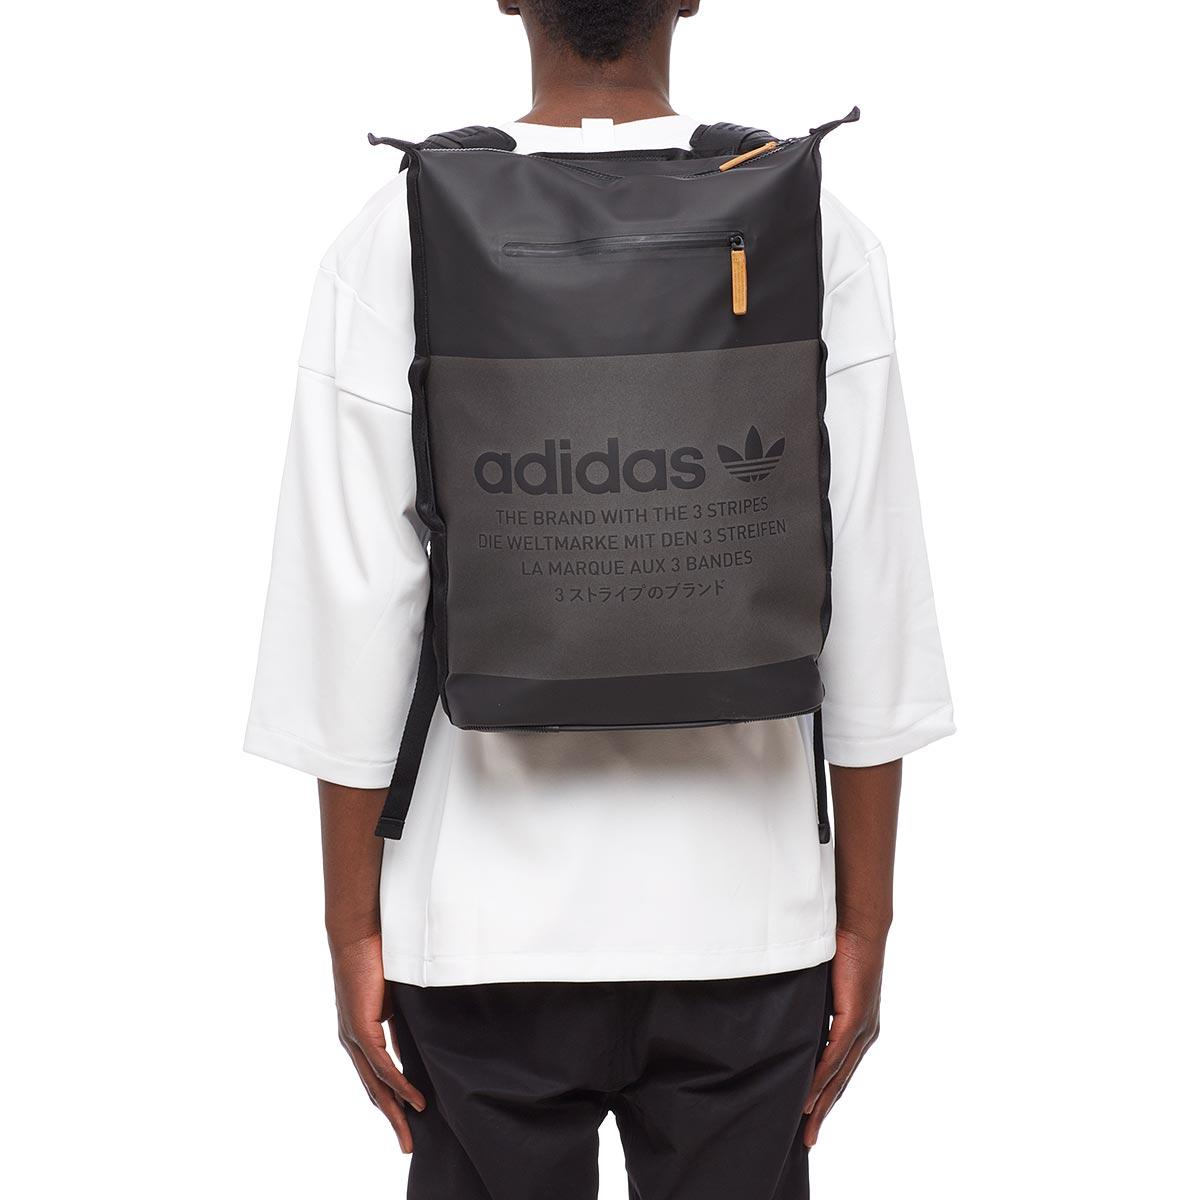 Lyst - adidas Originals Nmd Backpack Day in Black for Men 69df3031ae4ce